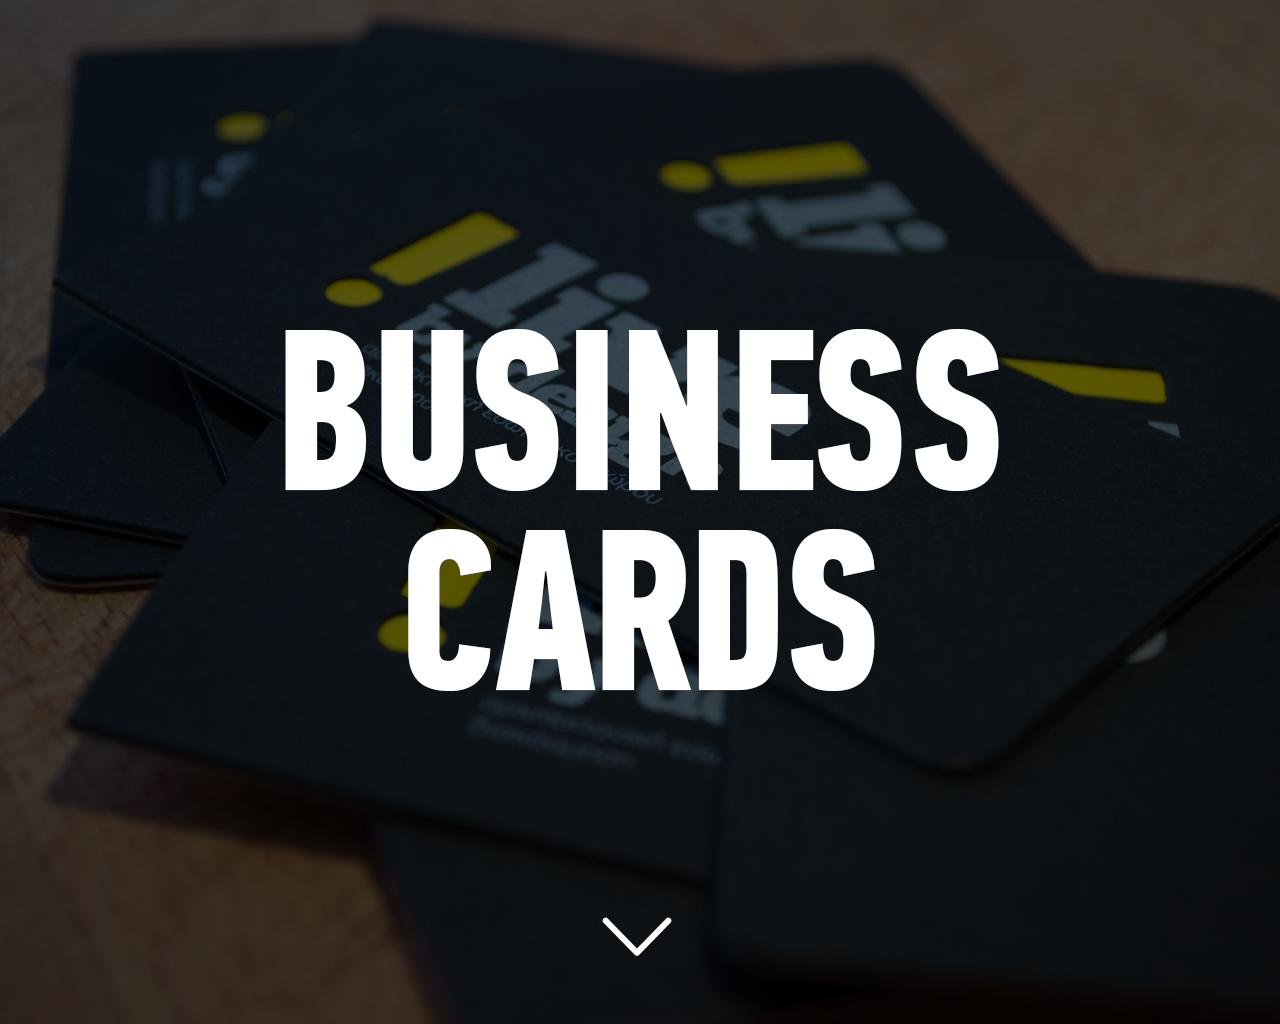 Professional Business Cards by sakisnbc on Envato Studio